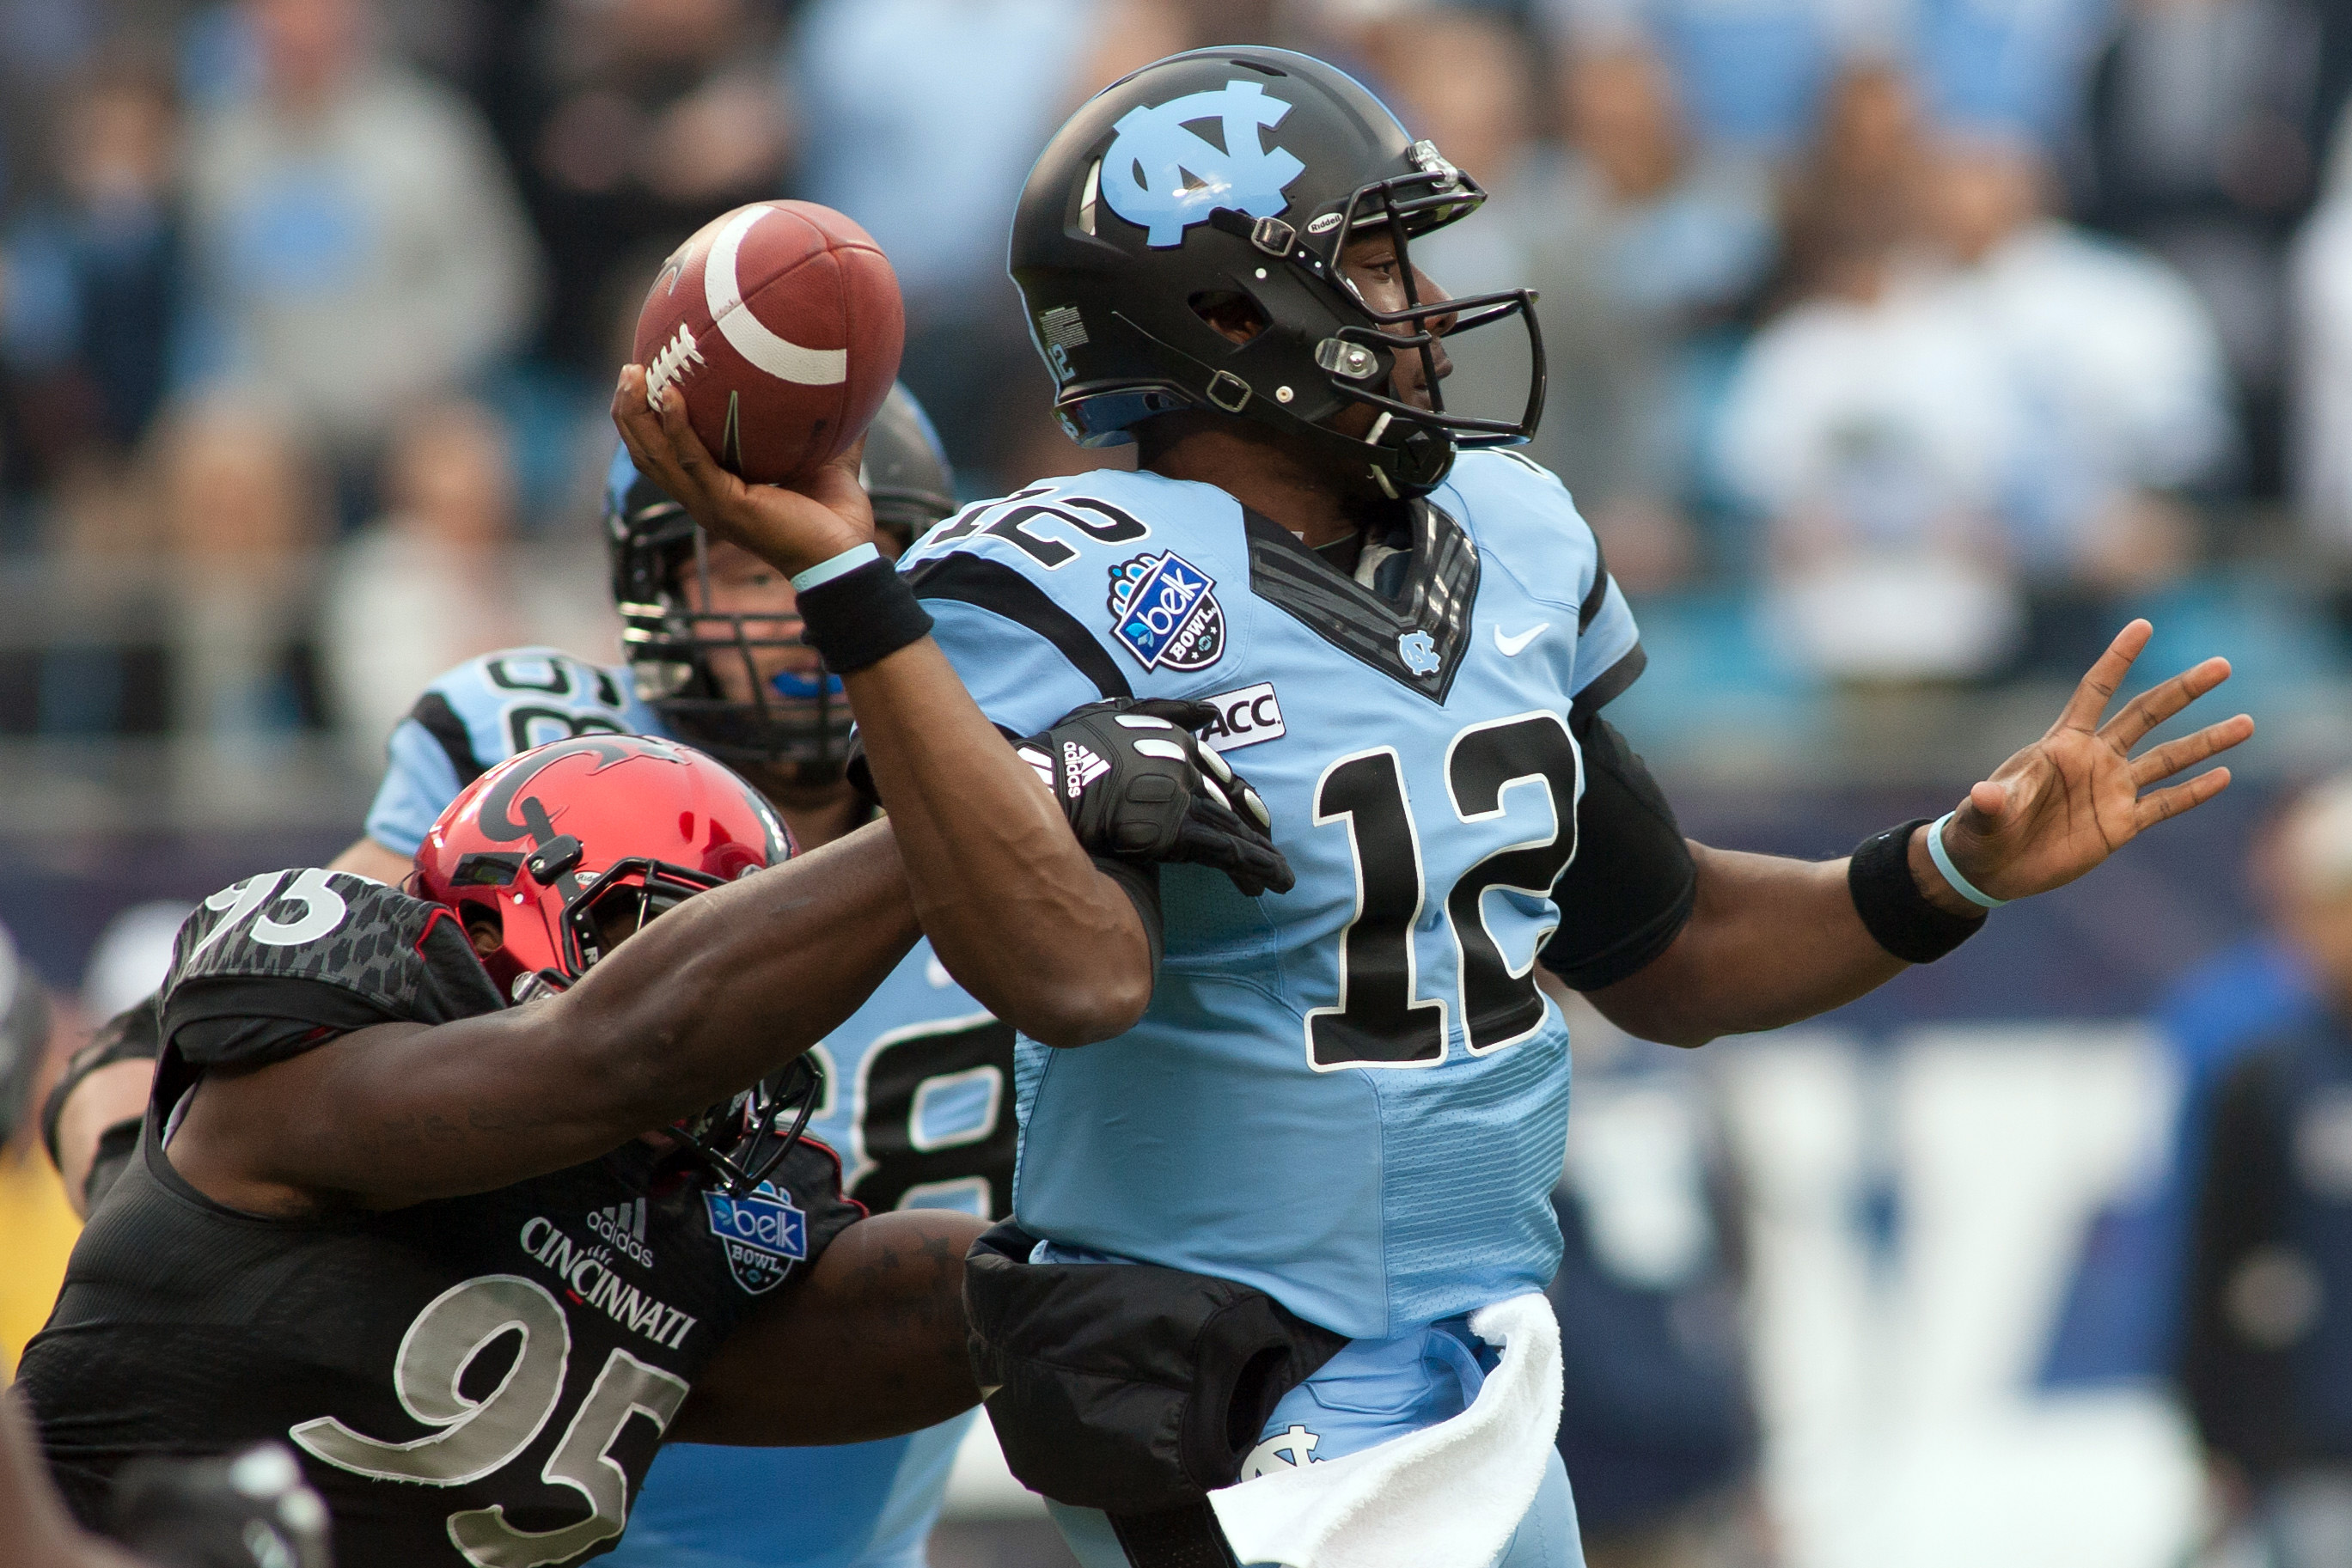 Cincinnati Bearcats defensive end Terrell Hartsfield (95) hits North Carolina Tar Heels quarterback Marquise Williams (12)  as he passes the ball during the first quarter at Bank of America Stadium. (Jeremy Brevard/USA TODAY Sports)